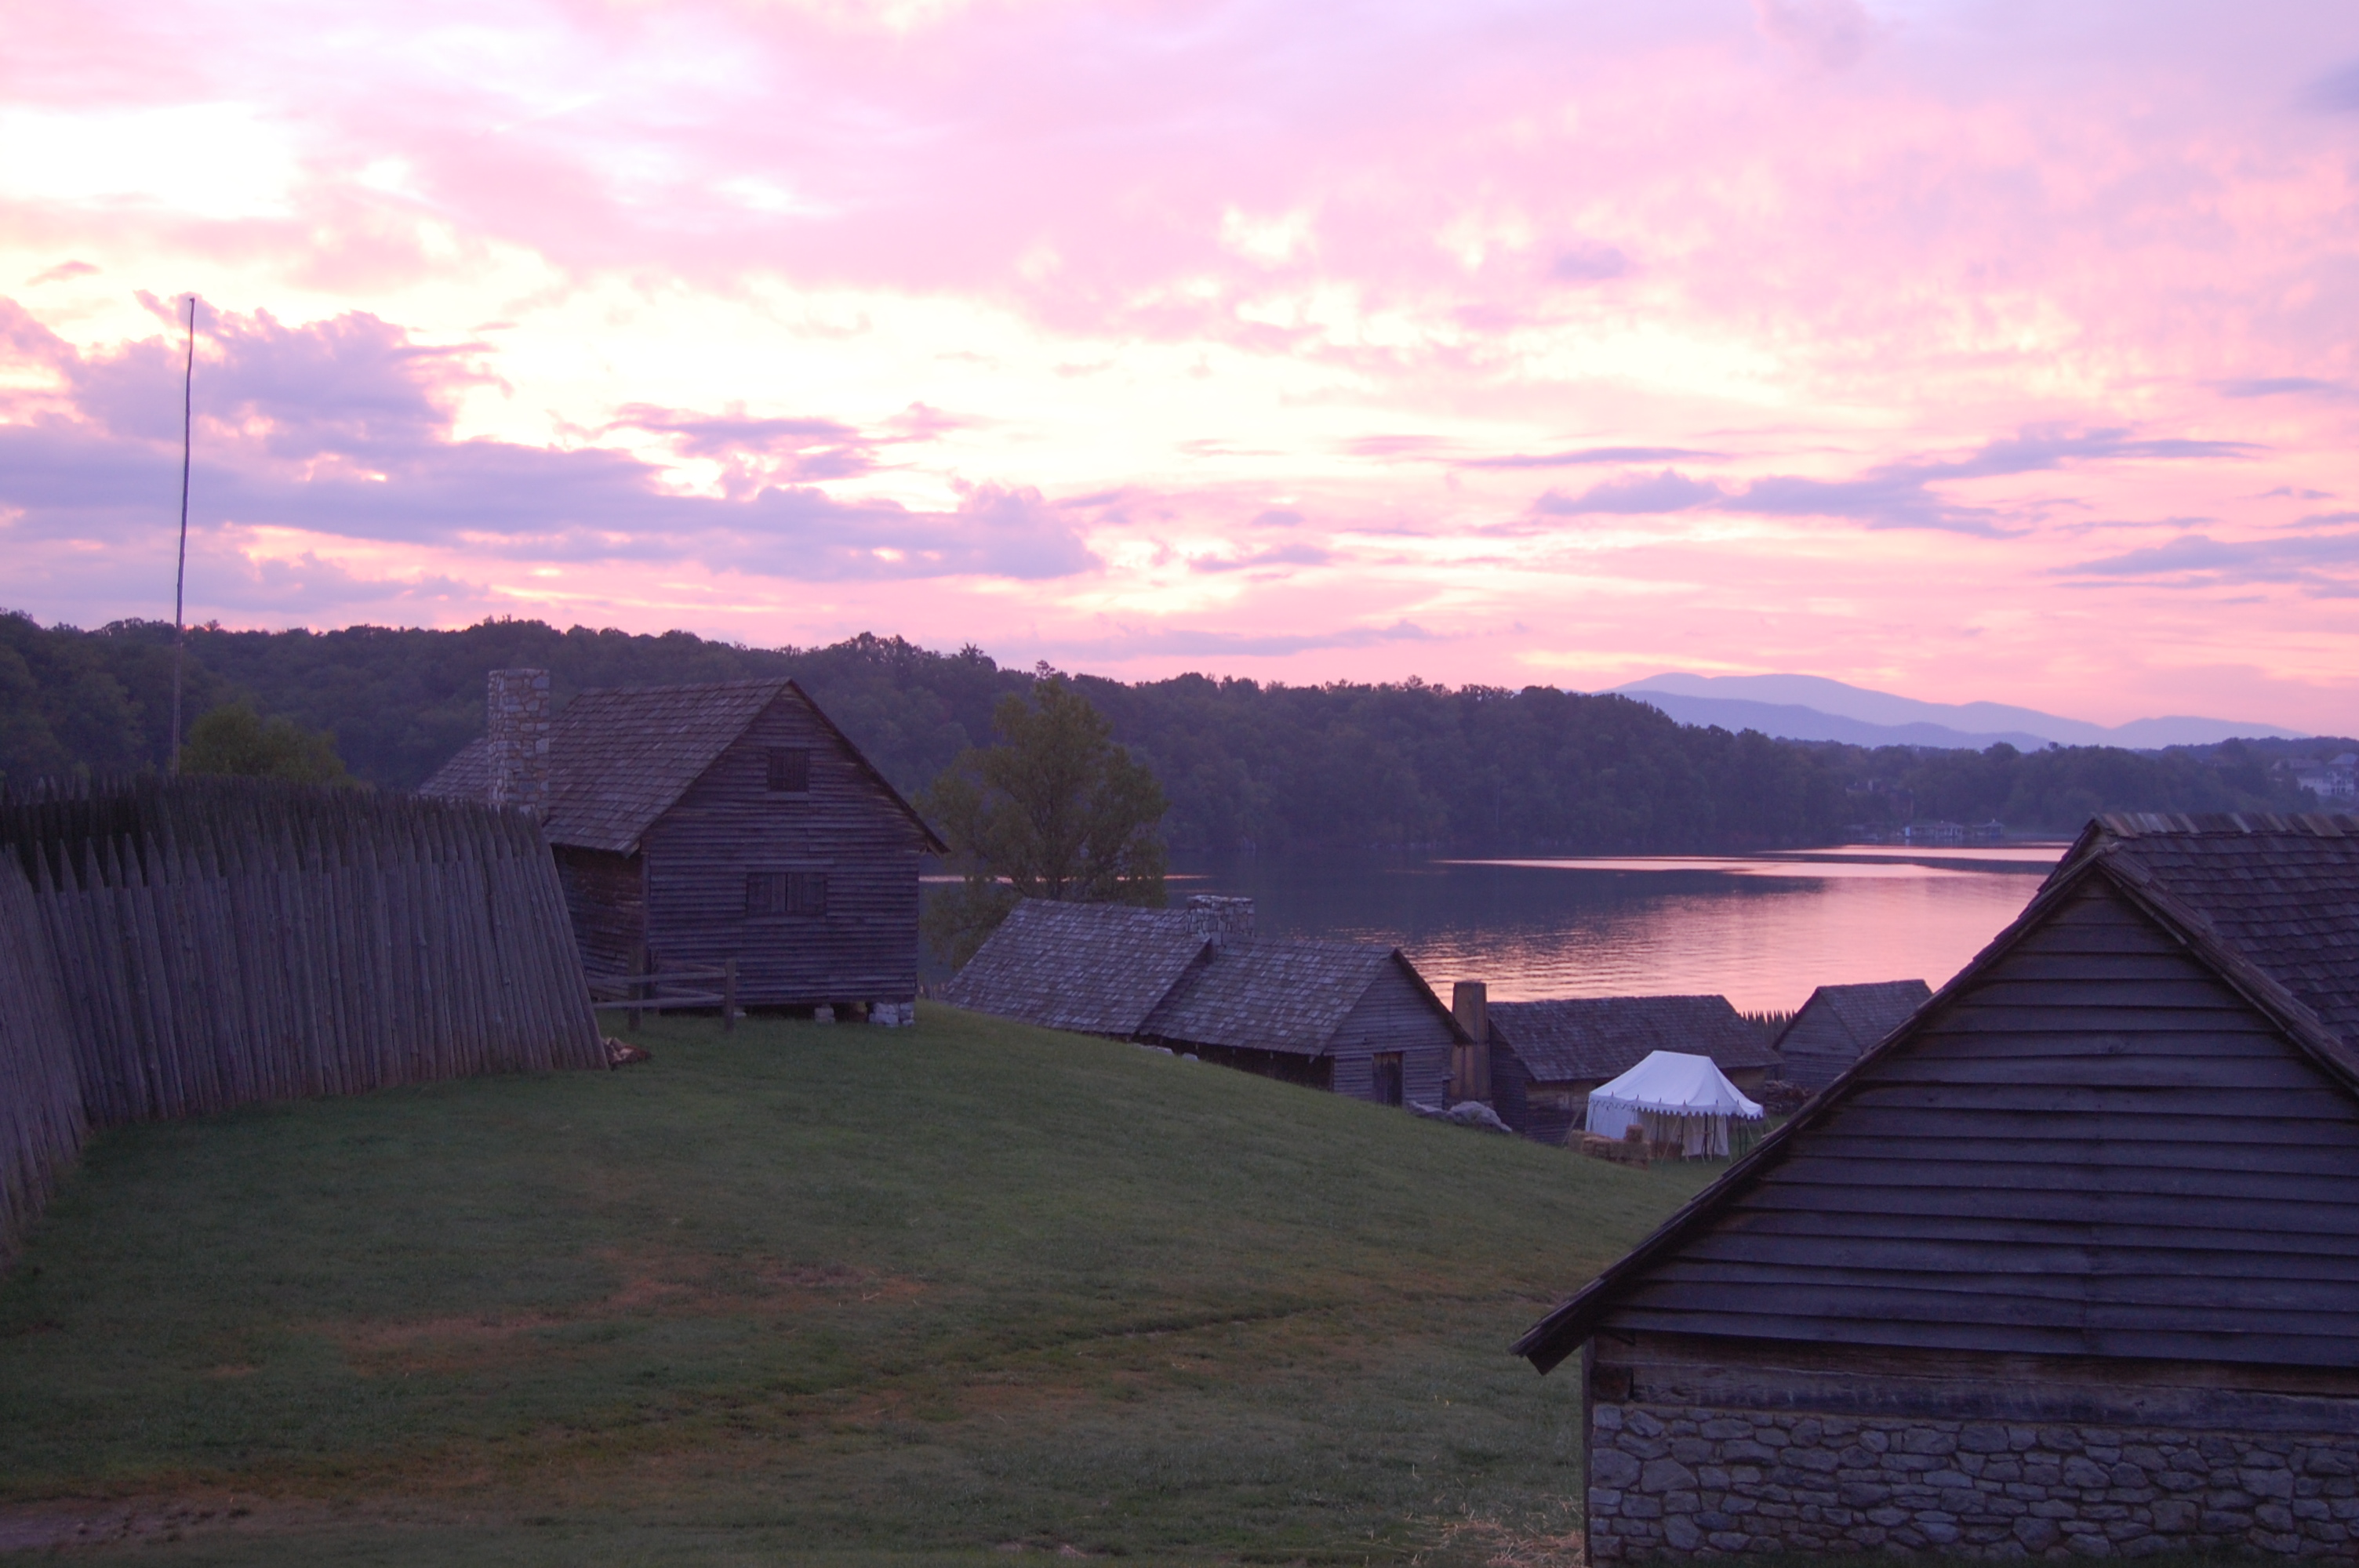 Dawn at Fort Loudoun State Historical Area. Photo by Gordon Horn.